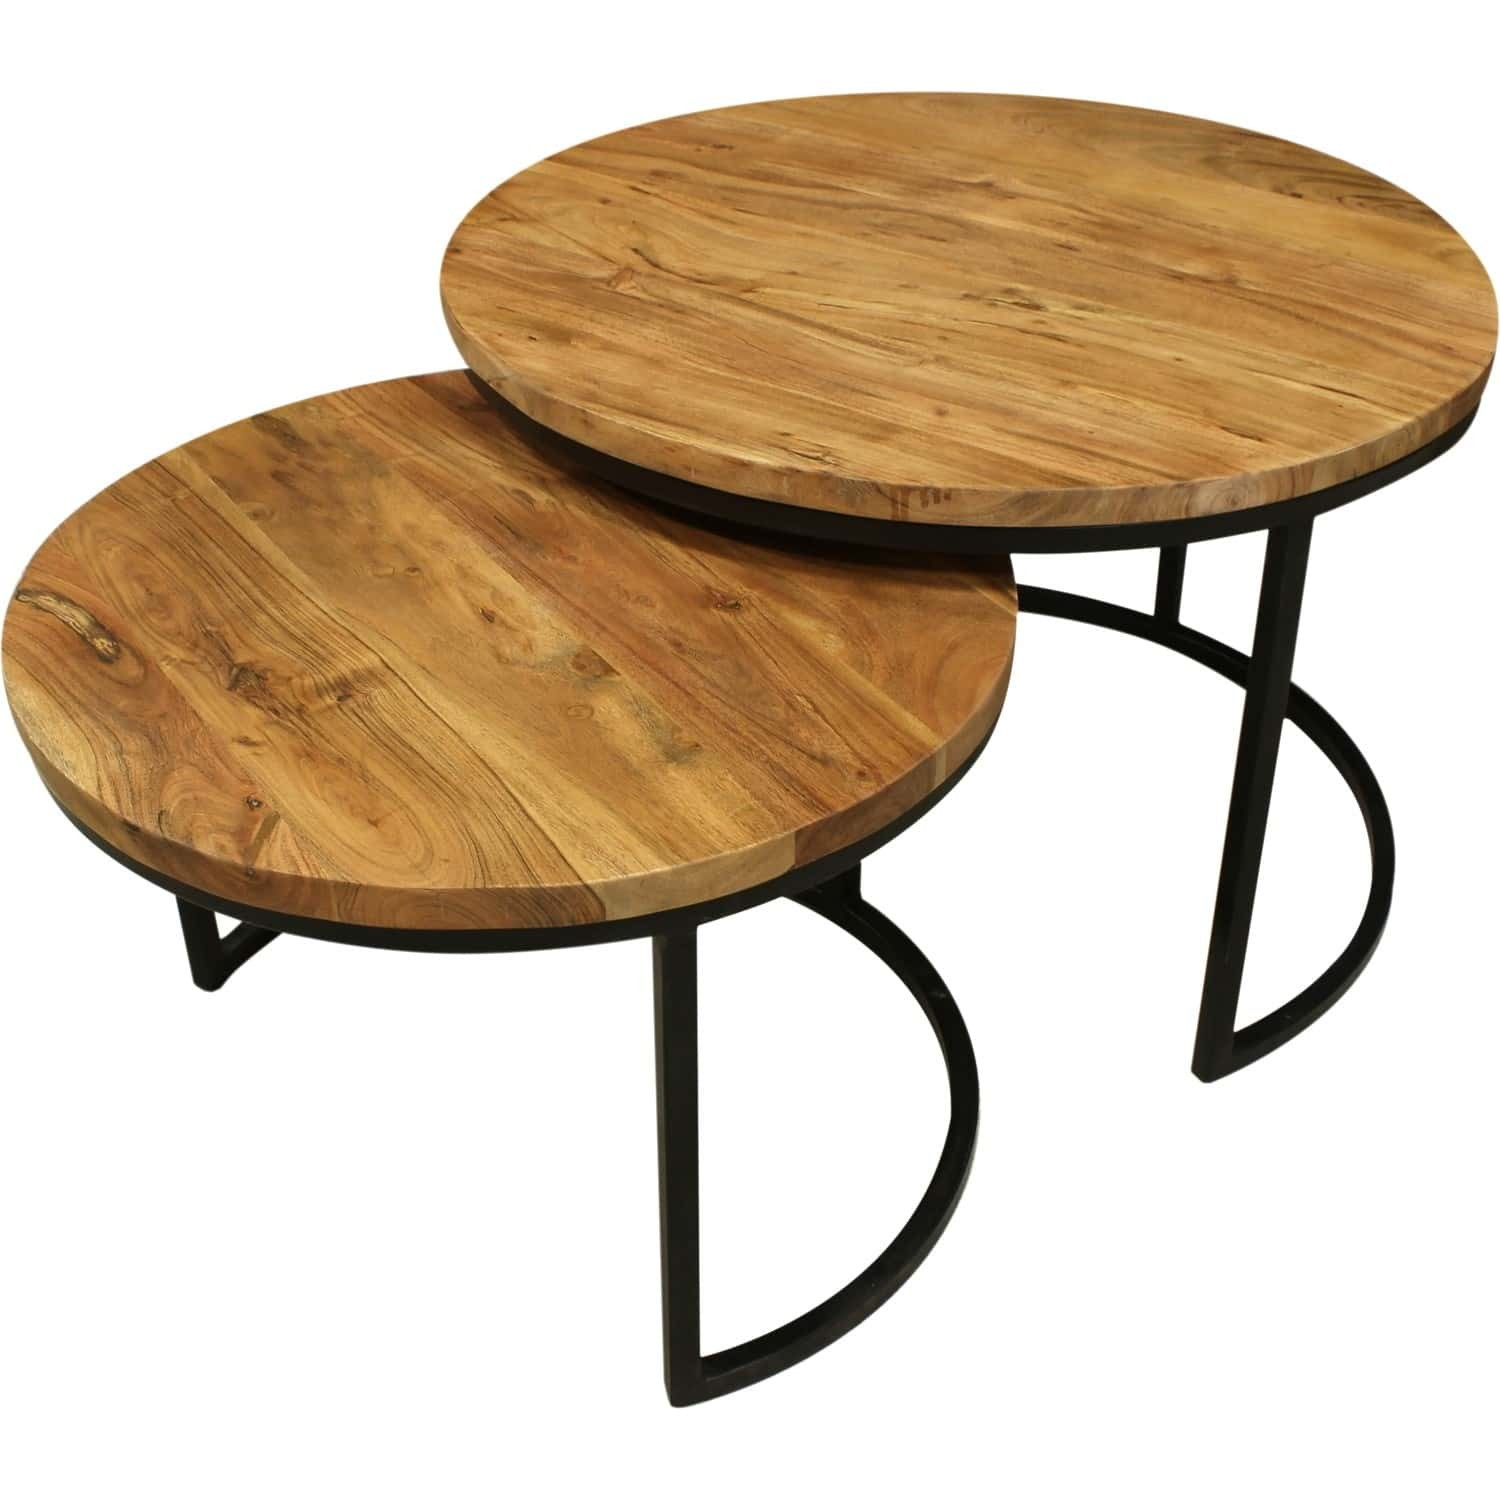 Tables basses gigognes bois et metal for Table basse gigogne ronde bois